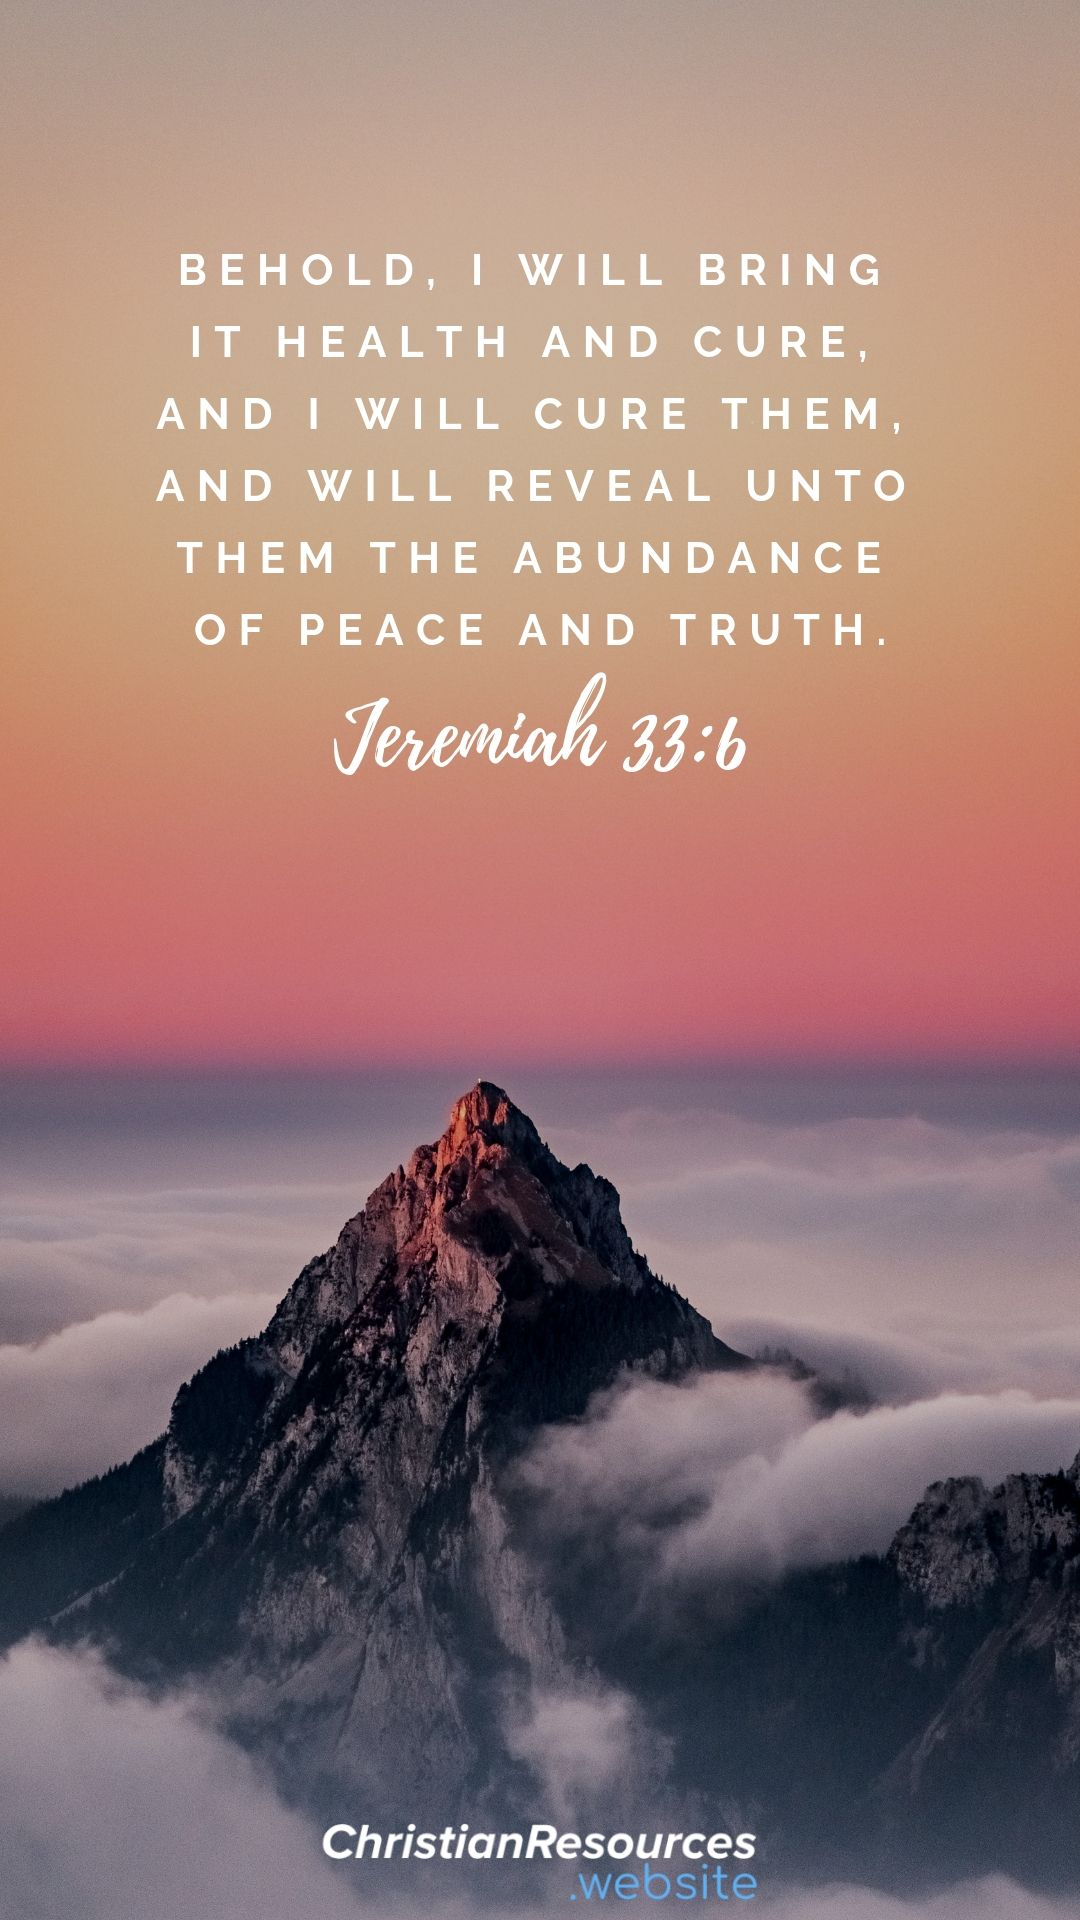 Behold, I will bring it health and cure, and I will cure them, and will reveal unto them the abundance of peace and truth (Jeremiah 33:6). #BibleVerses #BibleQuotes #ScriptureQuotes #GodQuotes #BibleQuotesInspirational #ChristianResources #Bible #Quotes